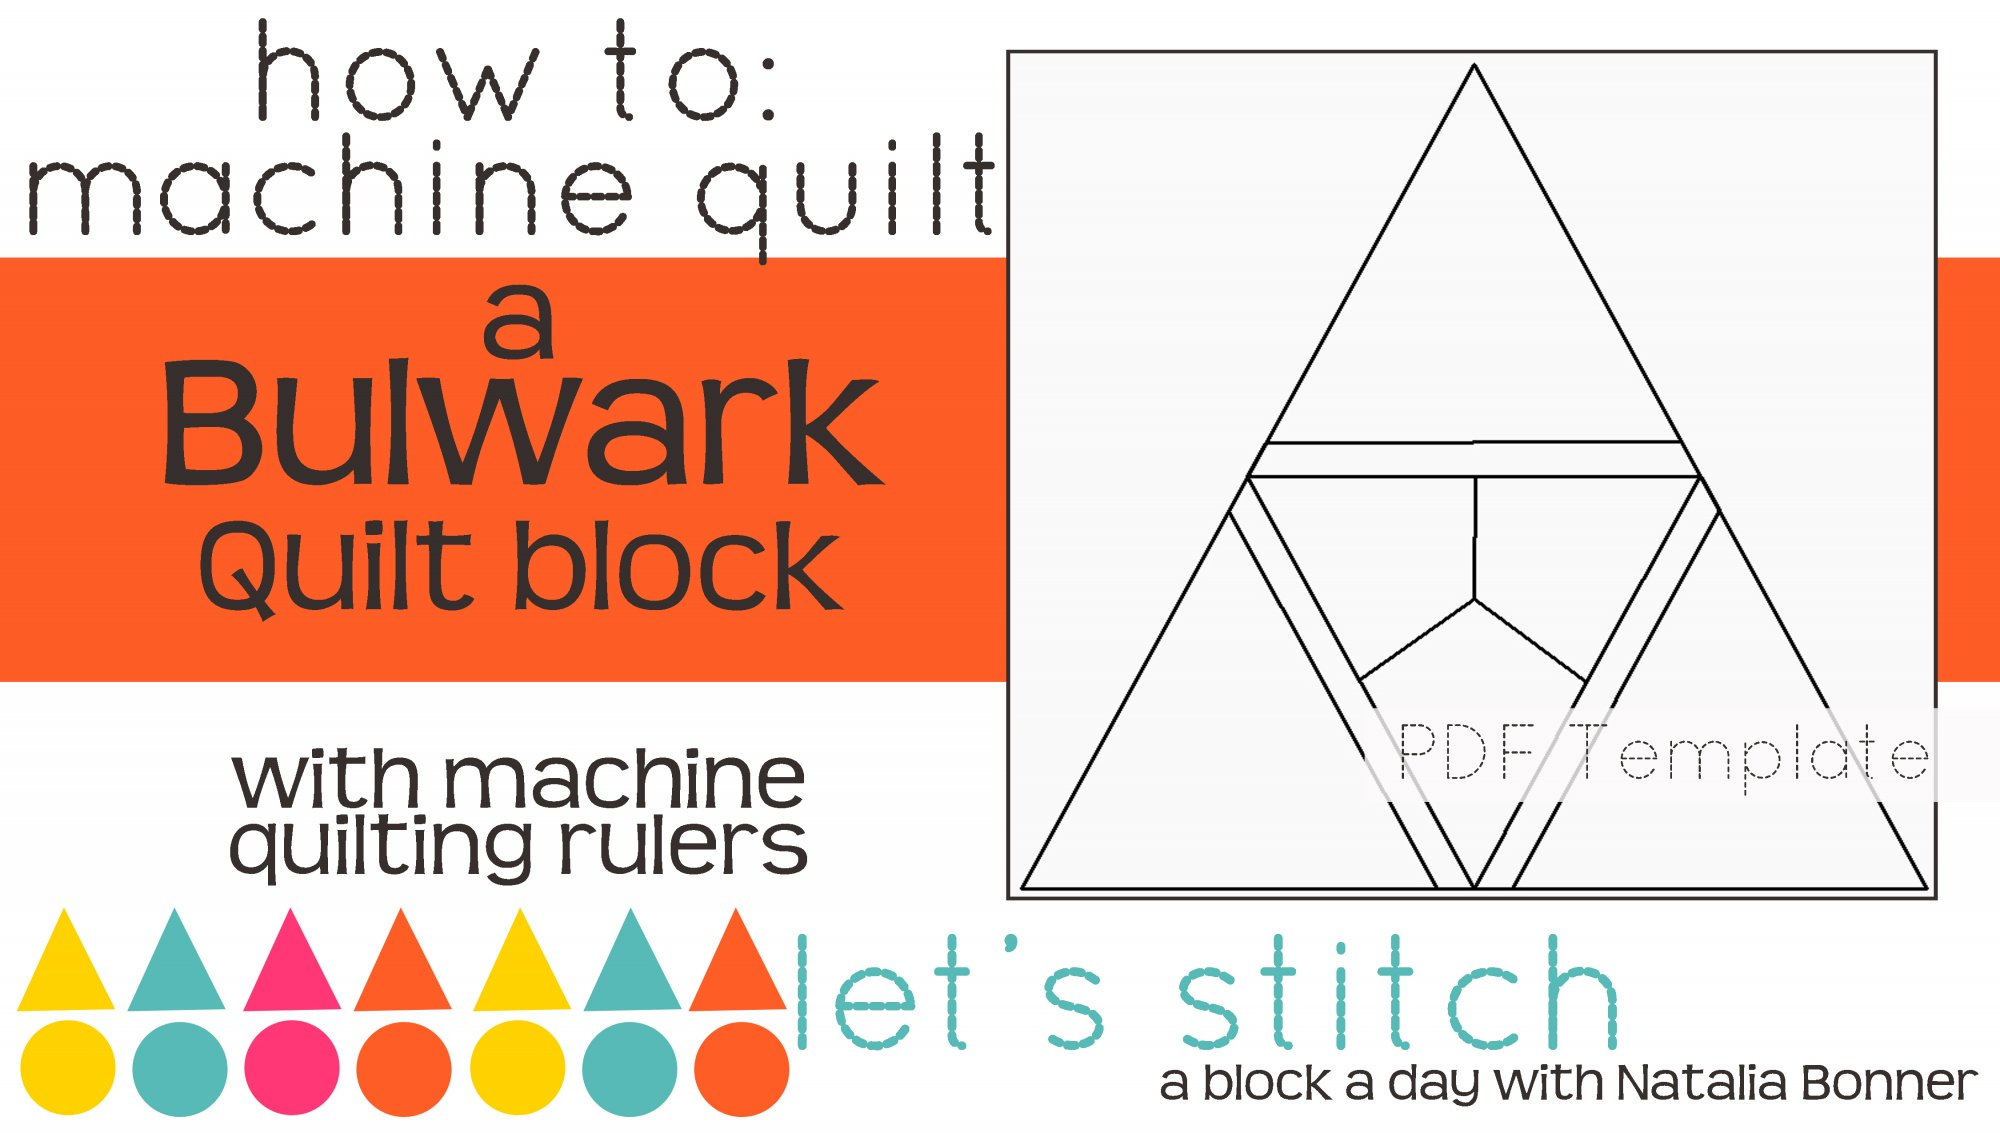 Let's Stitch - A Block a Day With Natalia Bonner - PDF - Bulwark